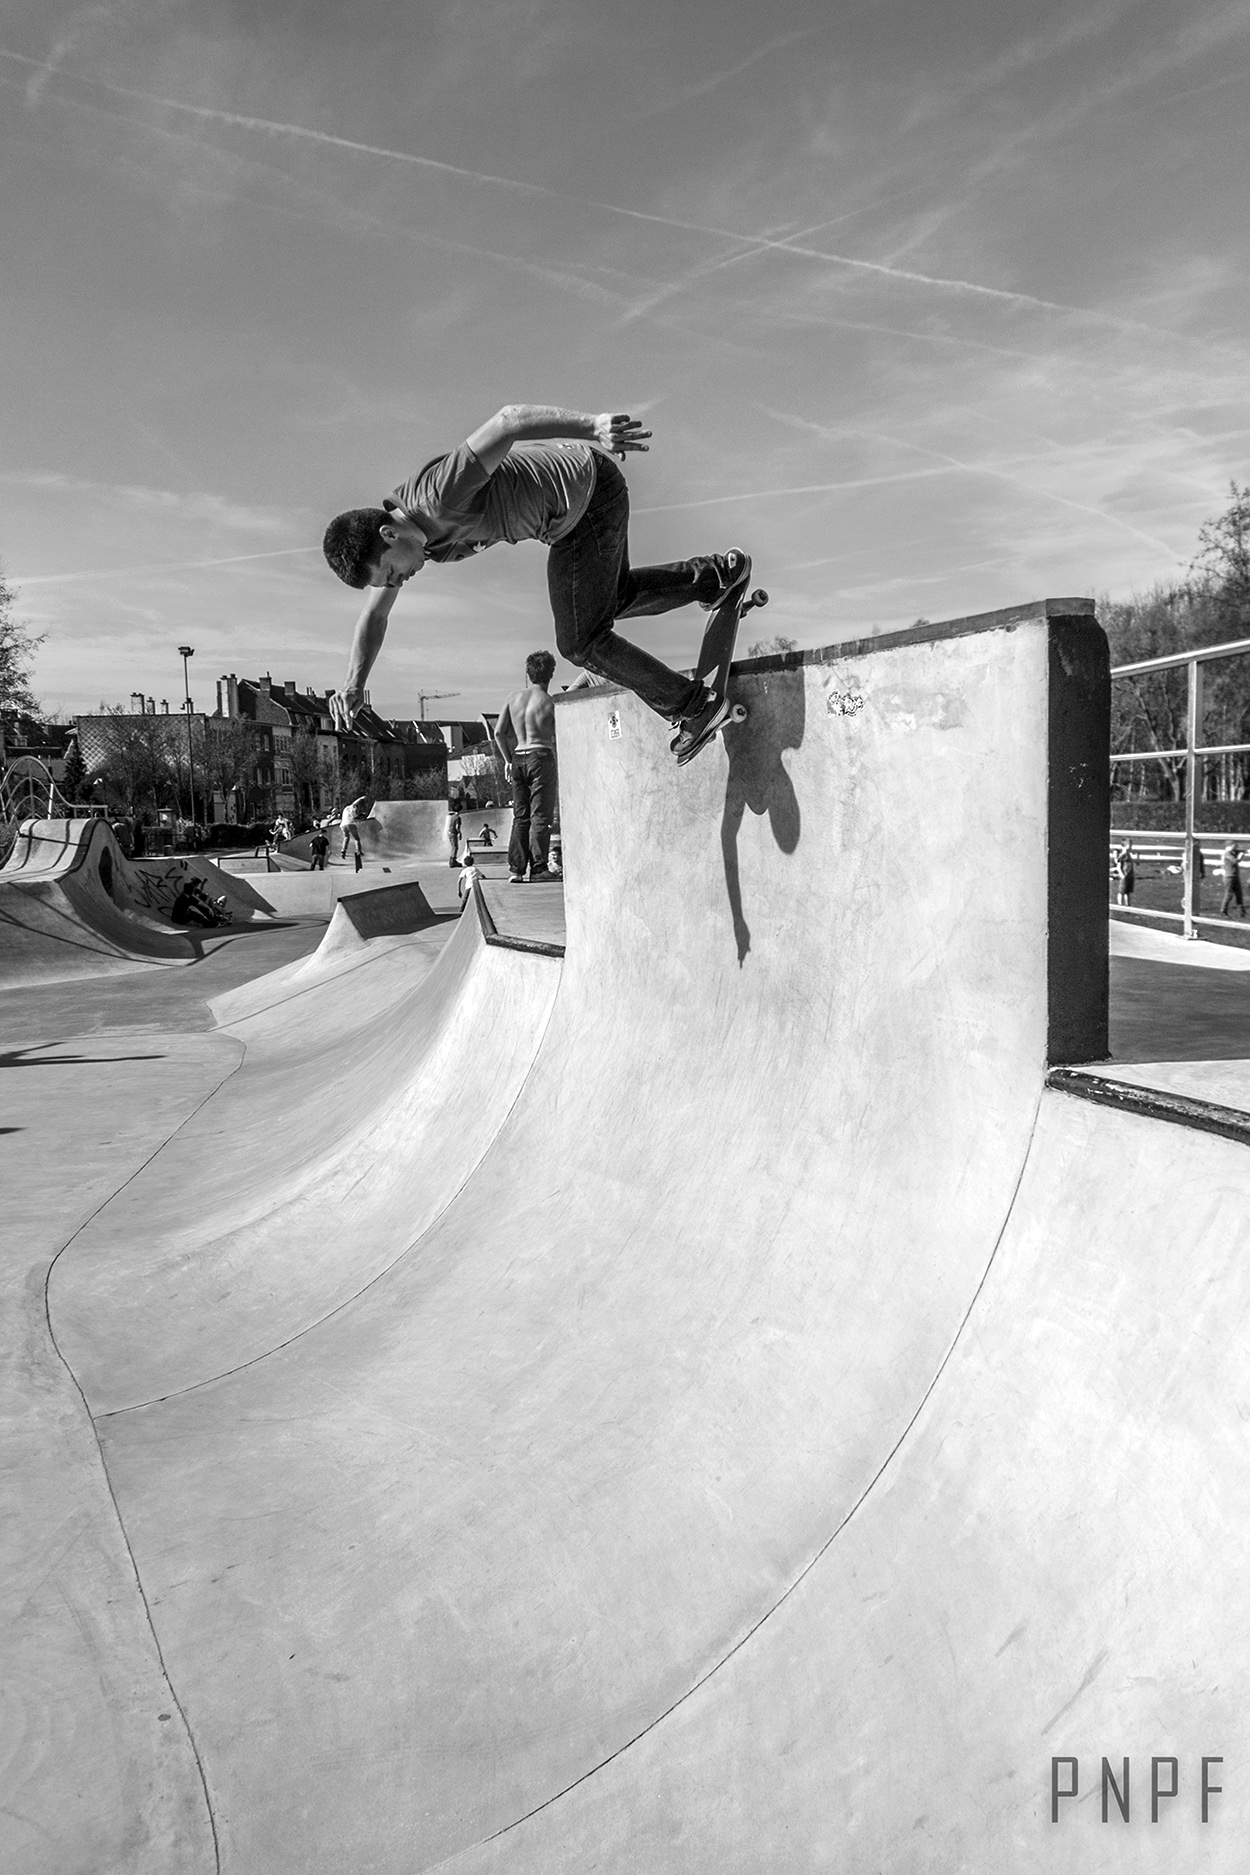 Rock 'n Roll by Unknown skater at Skatepark De Bres Photo by PNPF